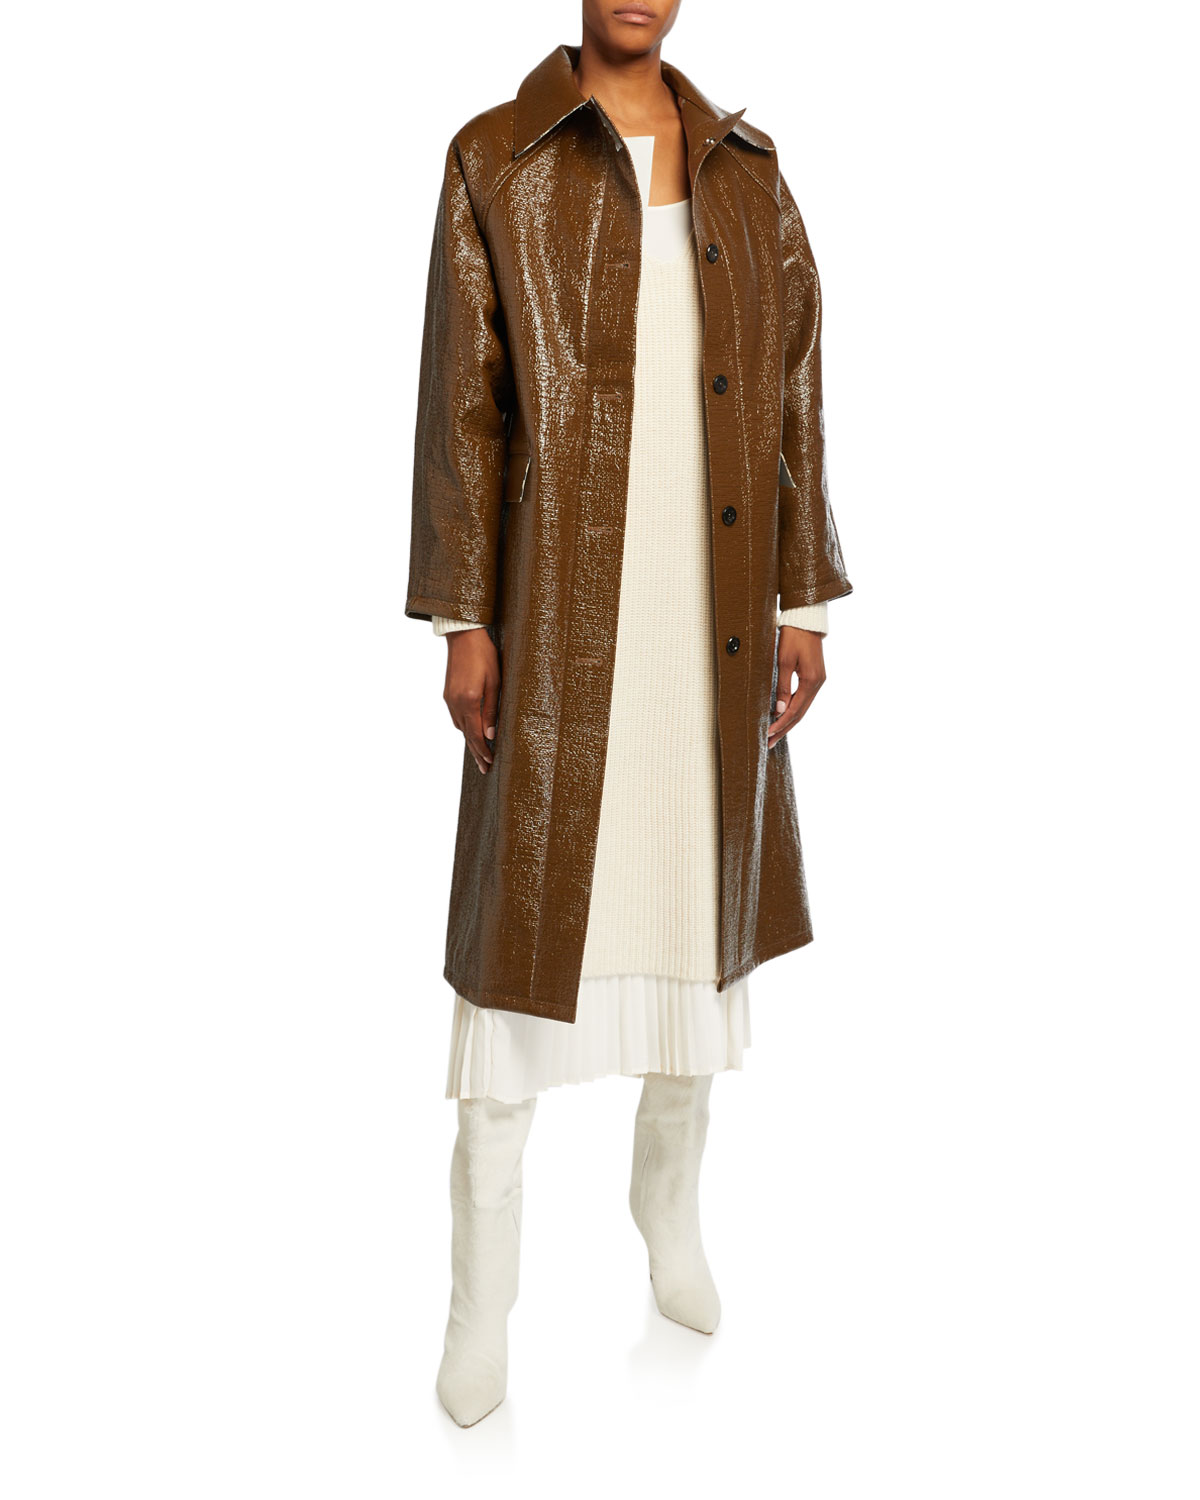 Kassl Lacquer Long Self-Tie Raincoat